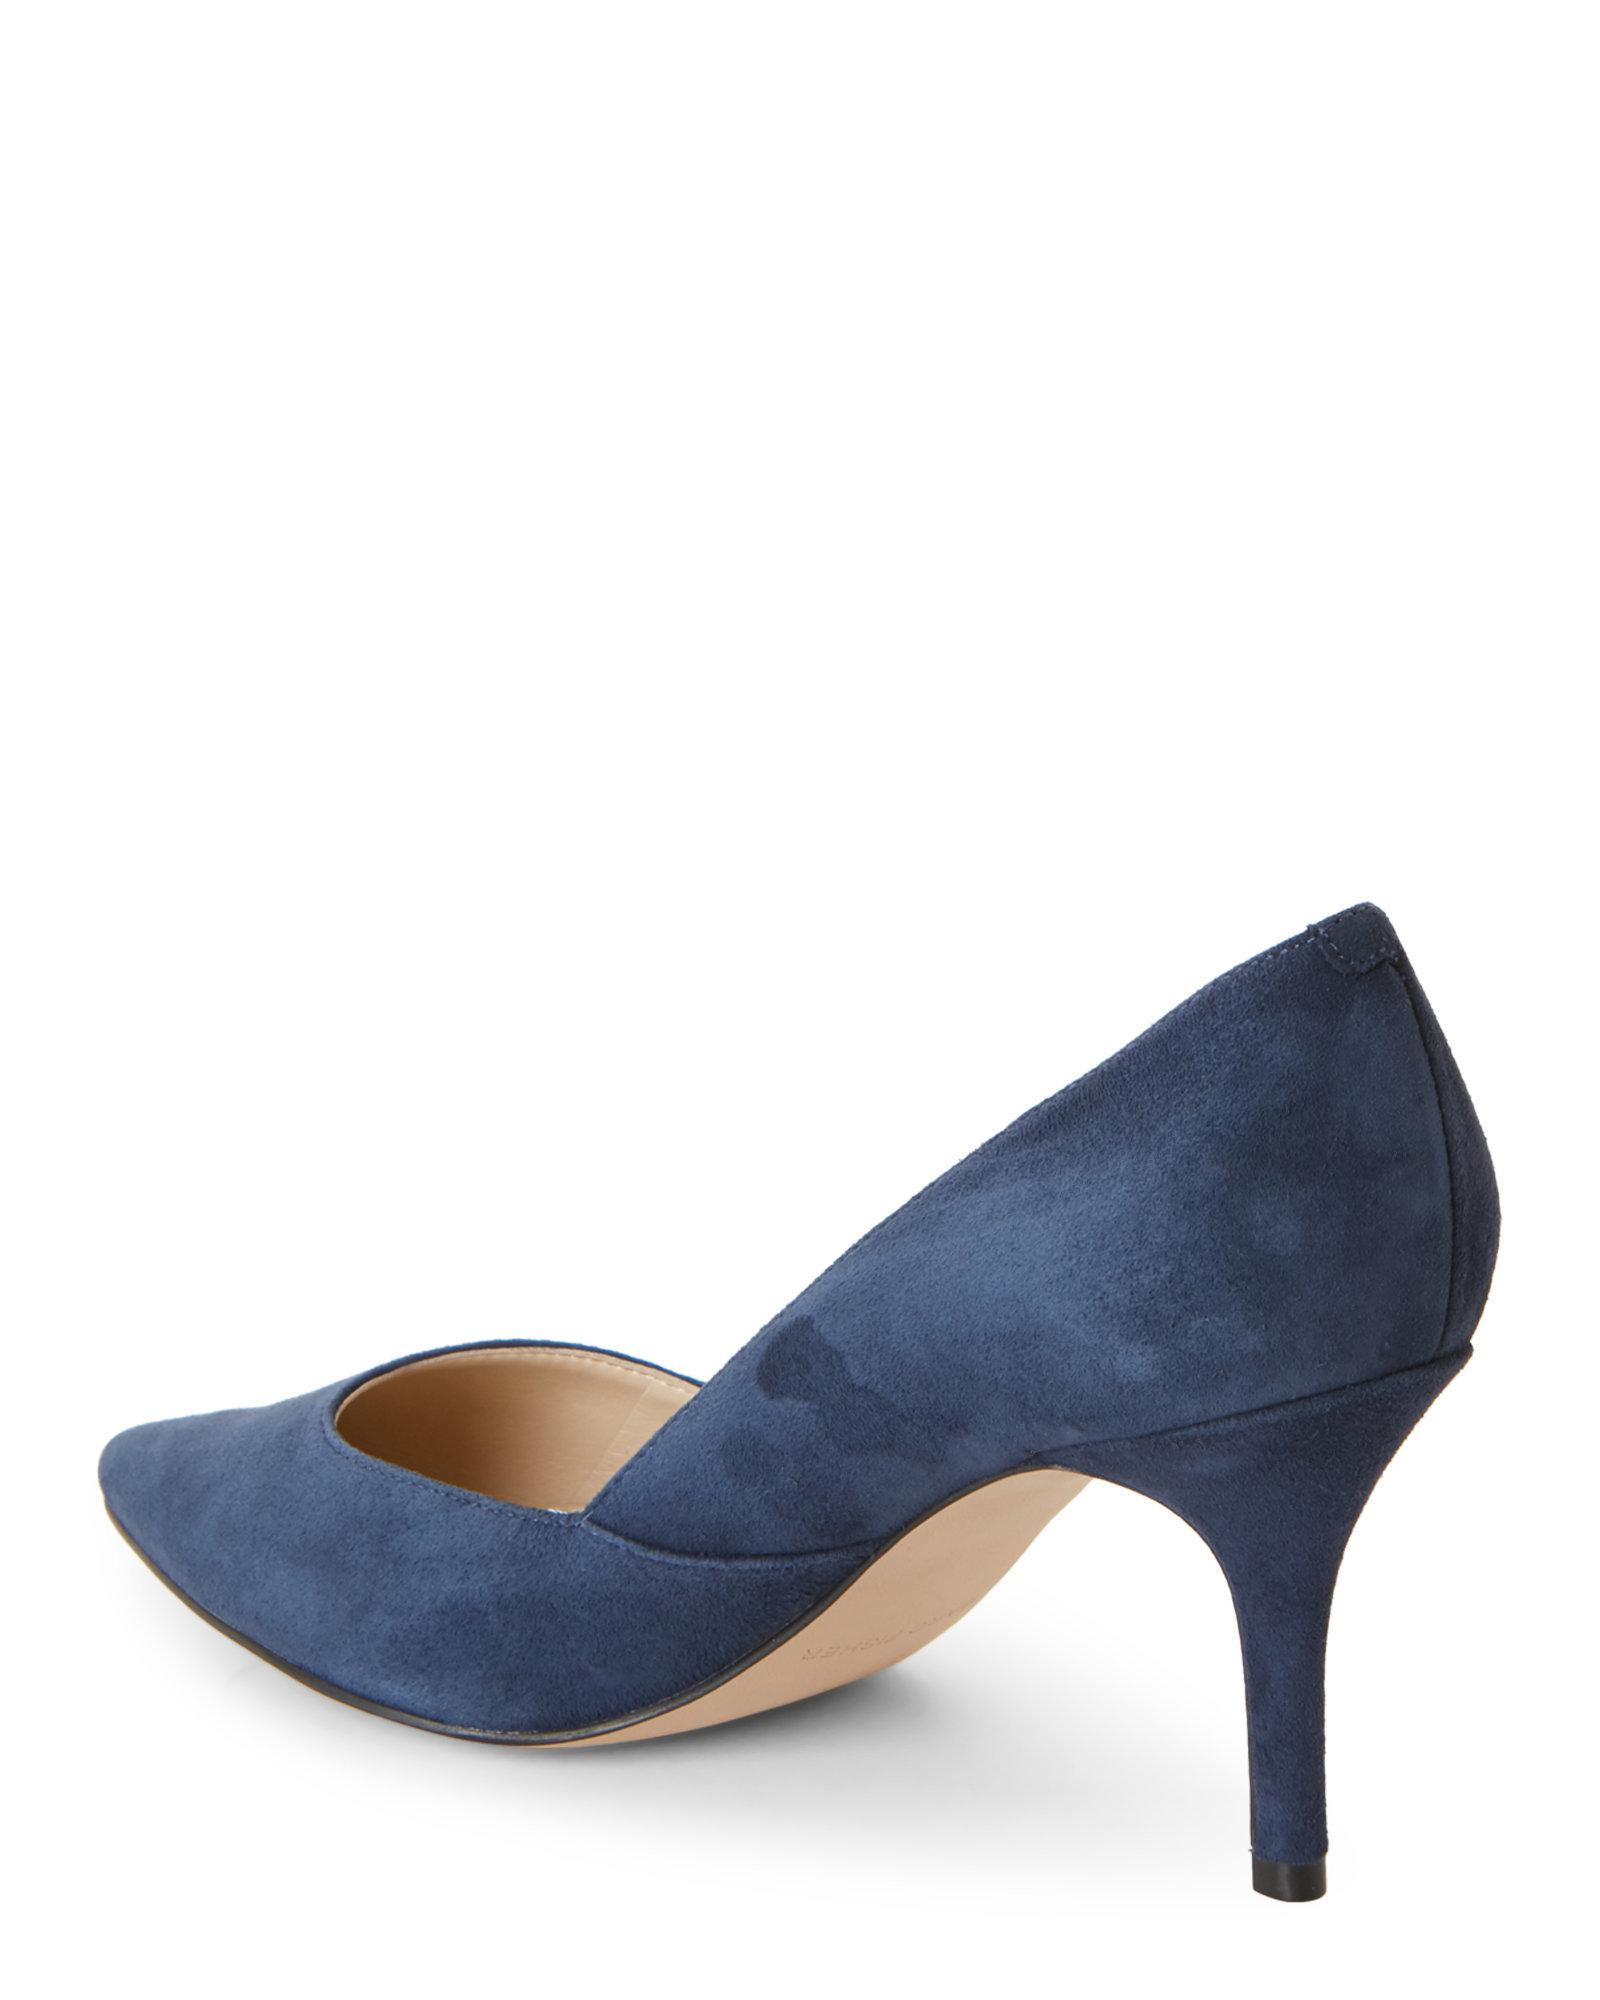 release date: check out closer at Navy Tuscany Pointed Toe Pumps